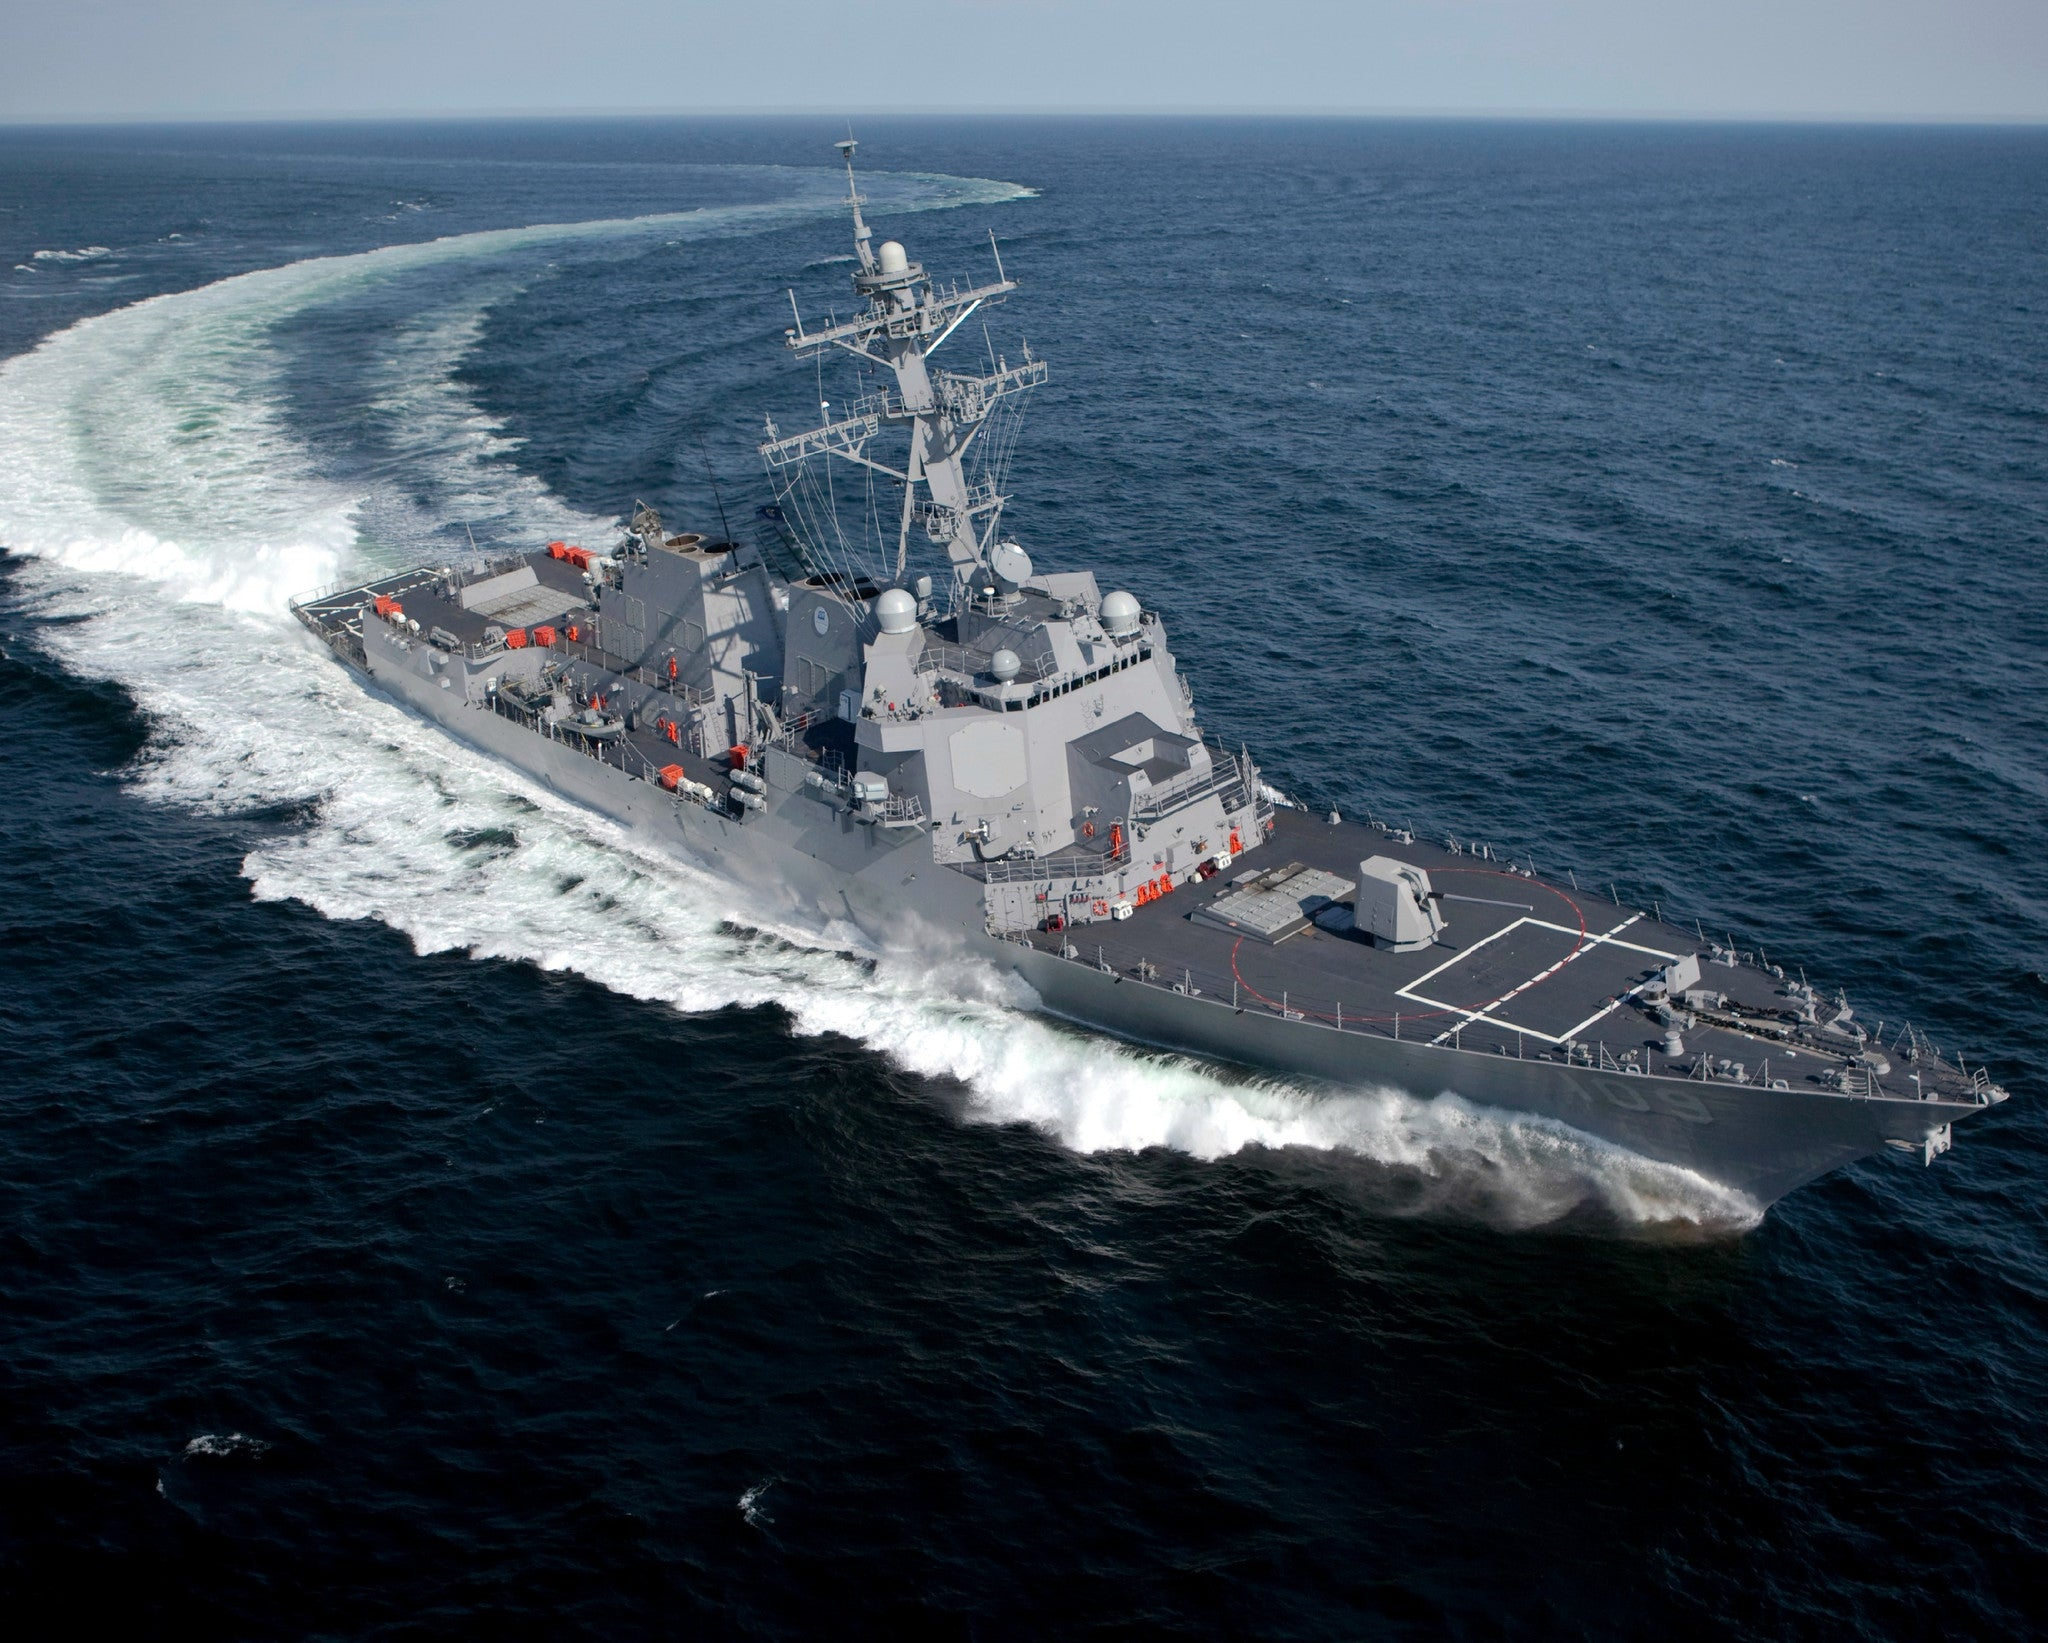 "Pre-Commissioning Unit (PCU) Jason Dunham DDG-109 Atlantic Ocean May 20, 2010 - 8 x 10"" Photograph"